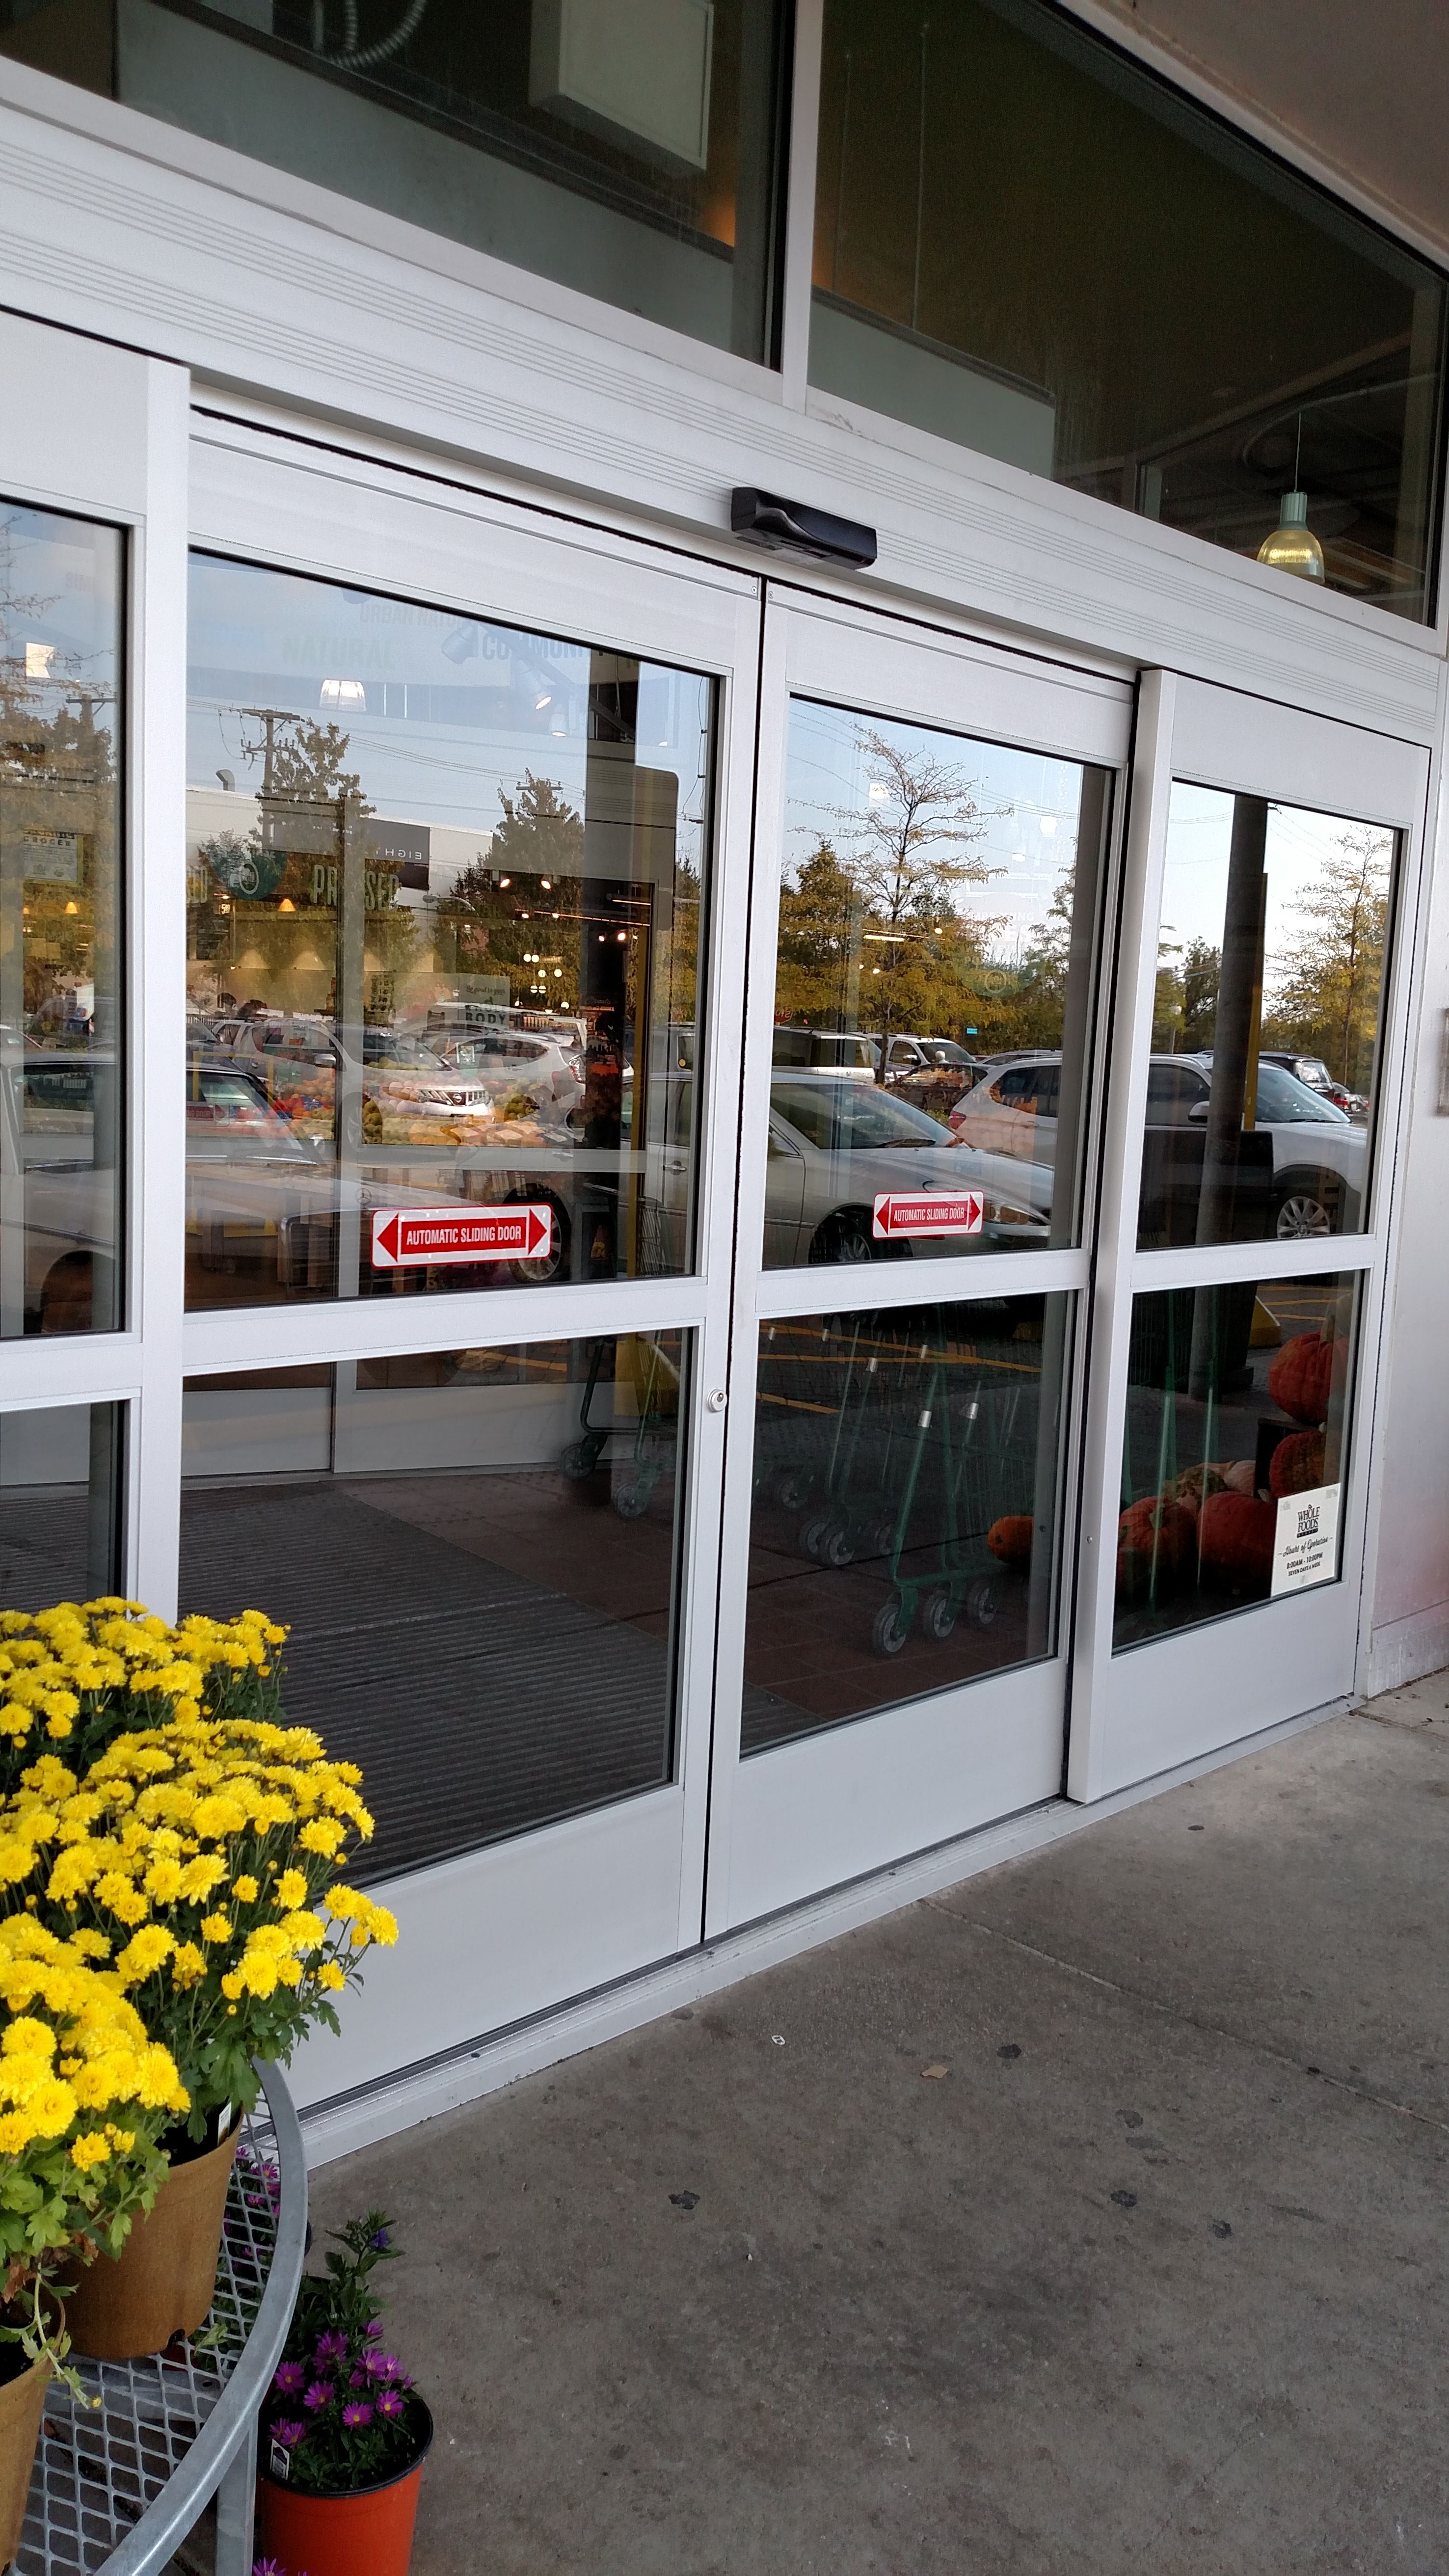 Automatic Sliding Doors By Preferred Window And Door Automatic Sliding Doors Window Installation Windows And Doors